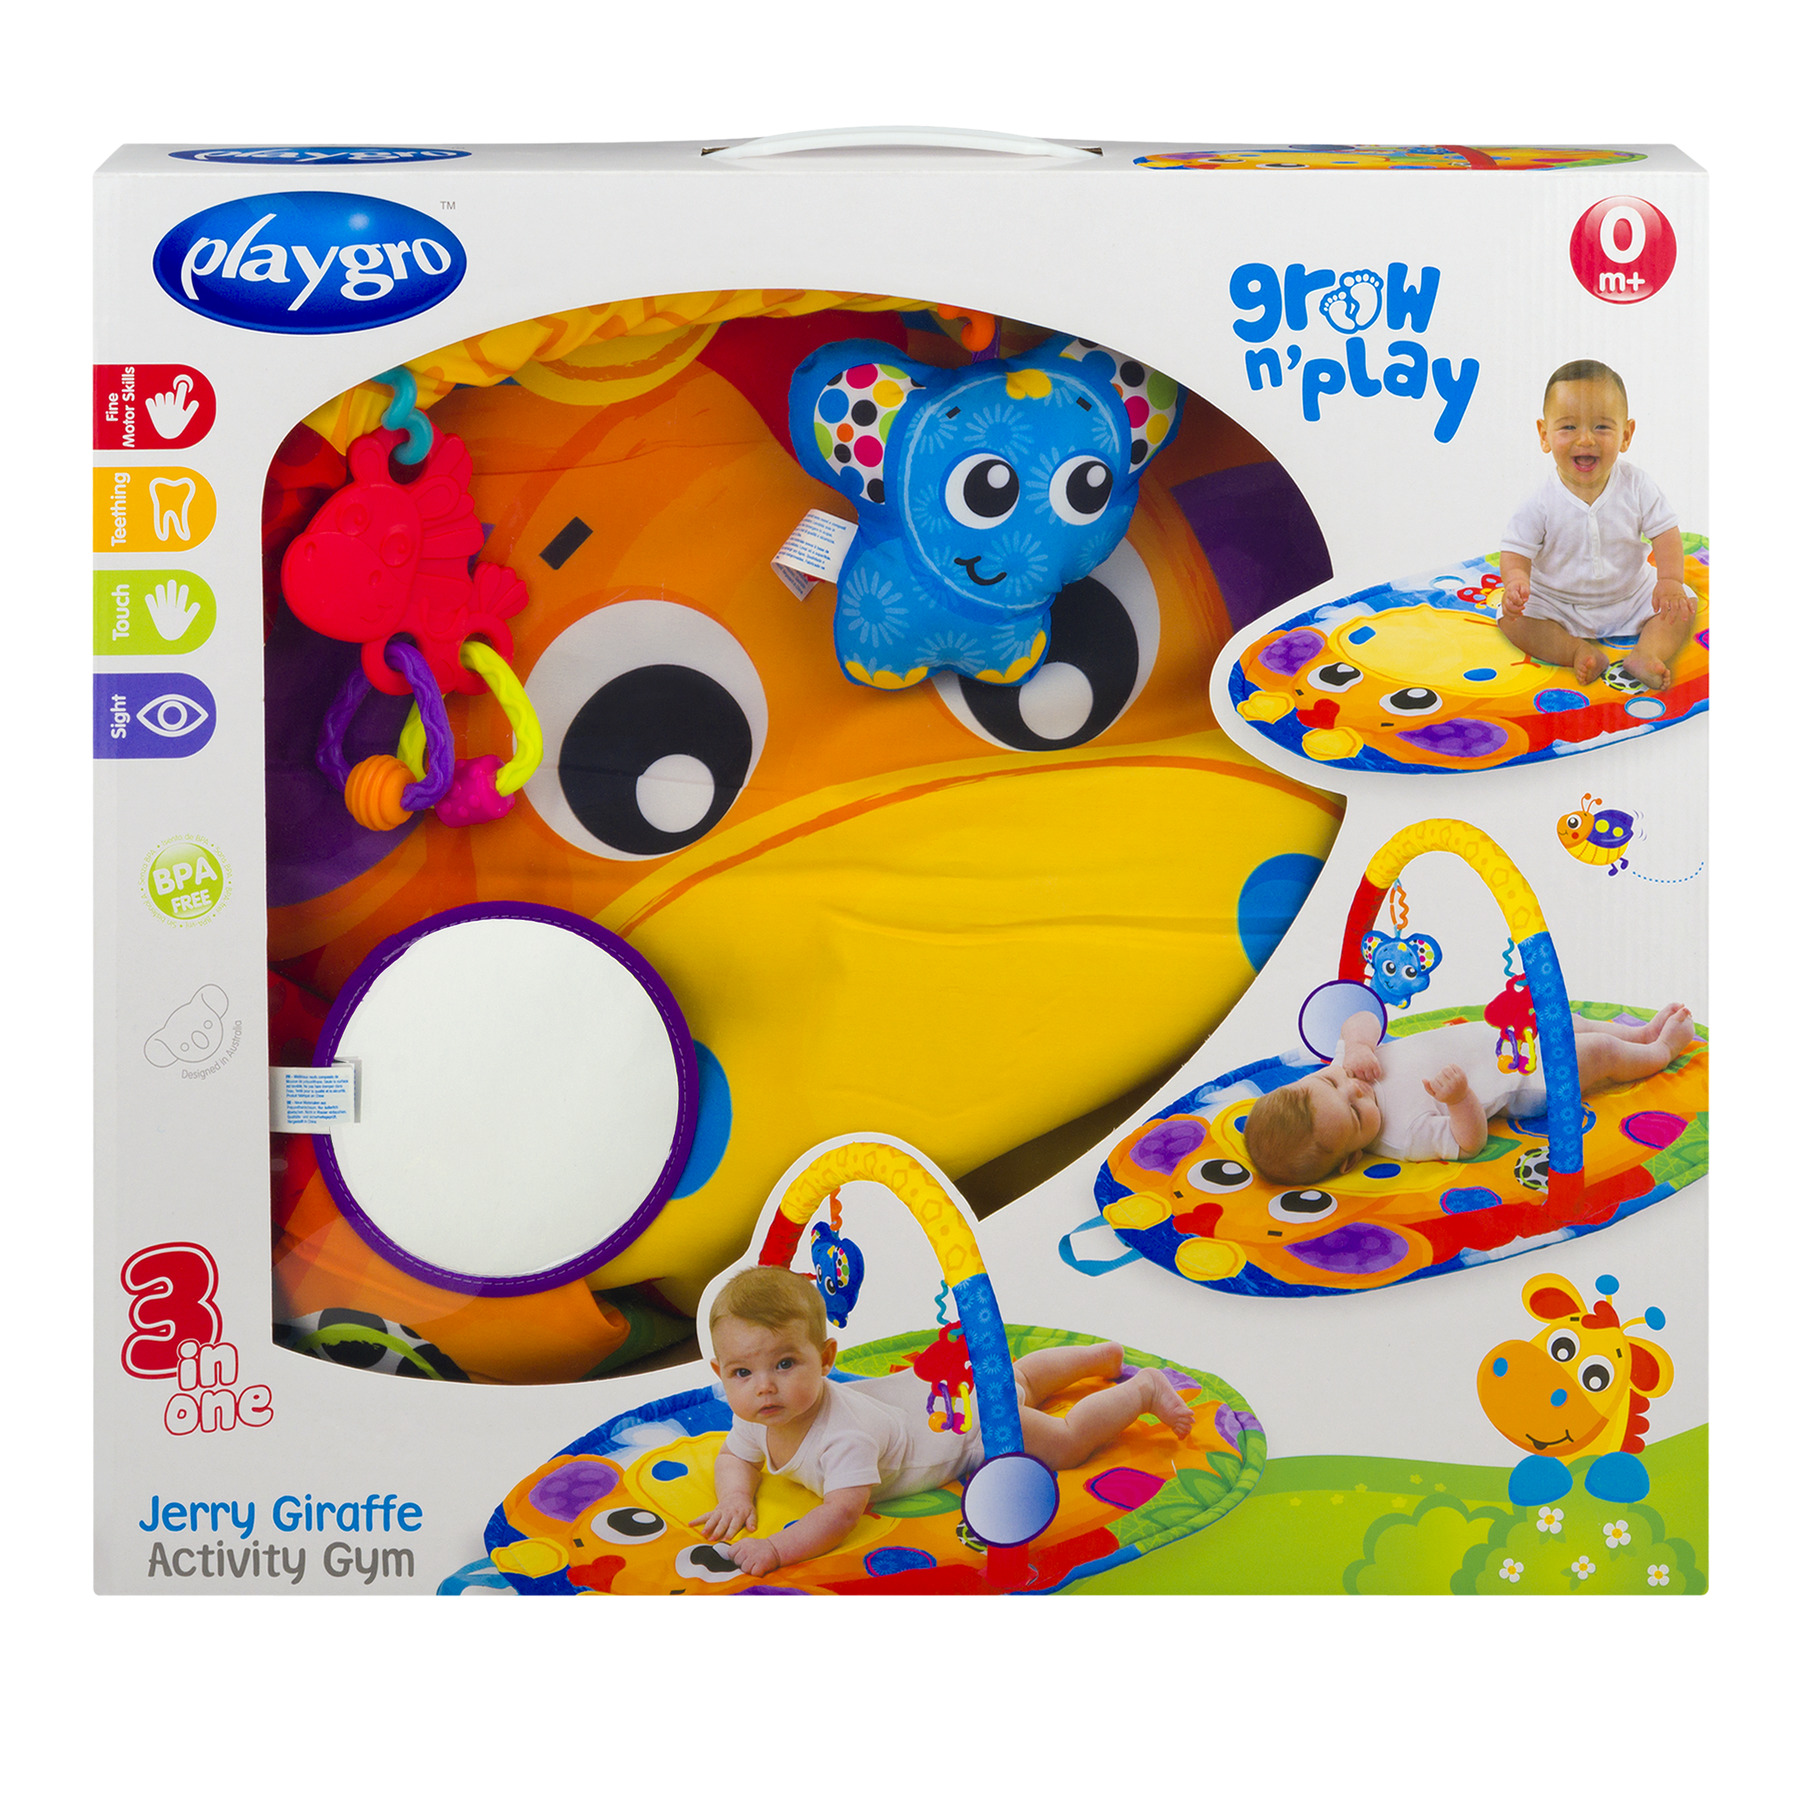 Playgro 3 In 1 Jerry Giraffe Activity Gym 0m+, 1.0 CT